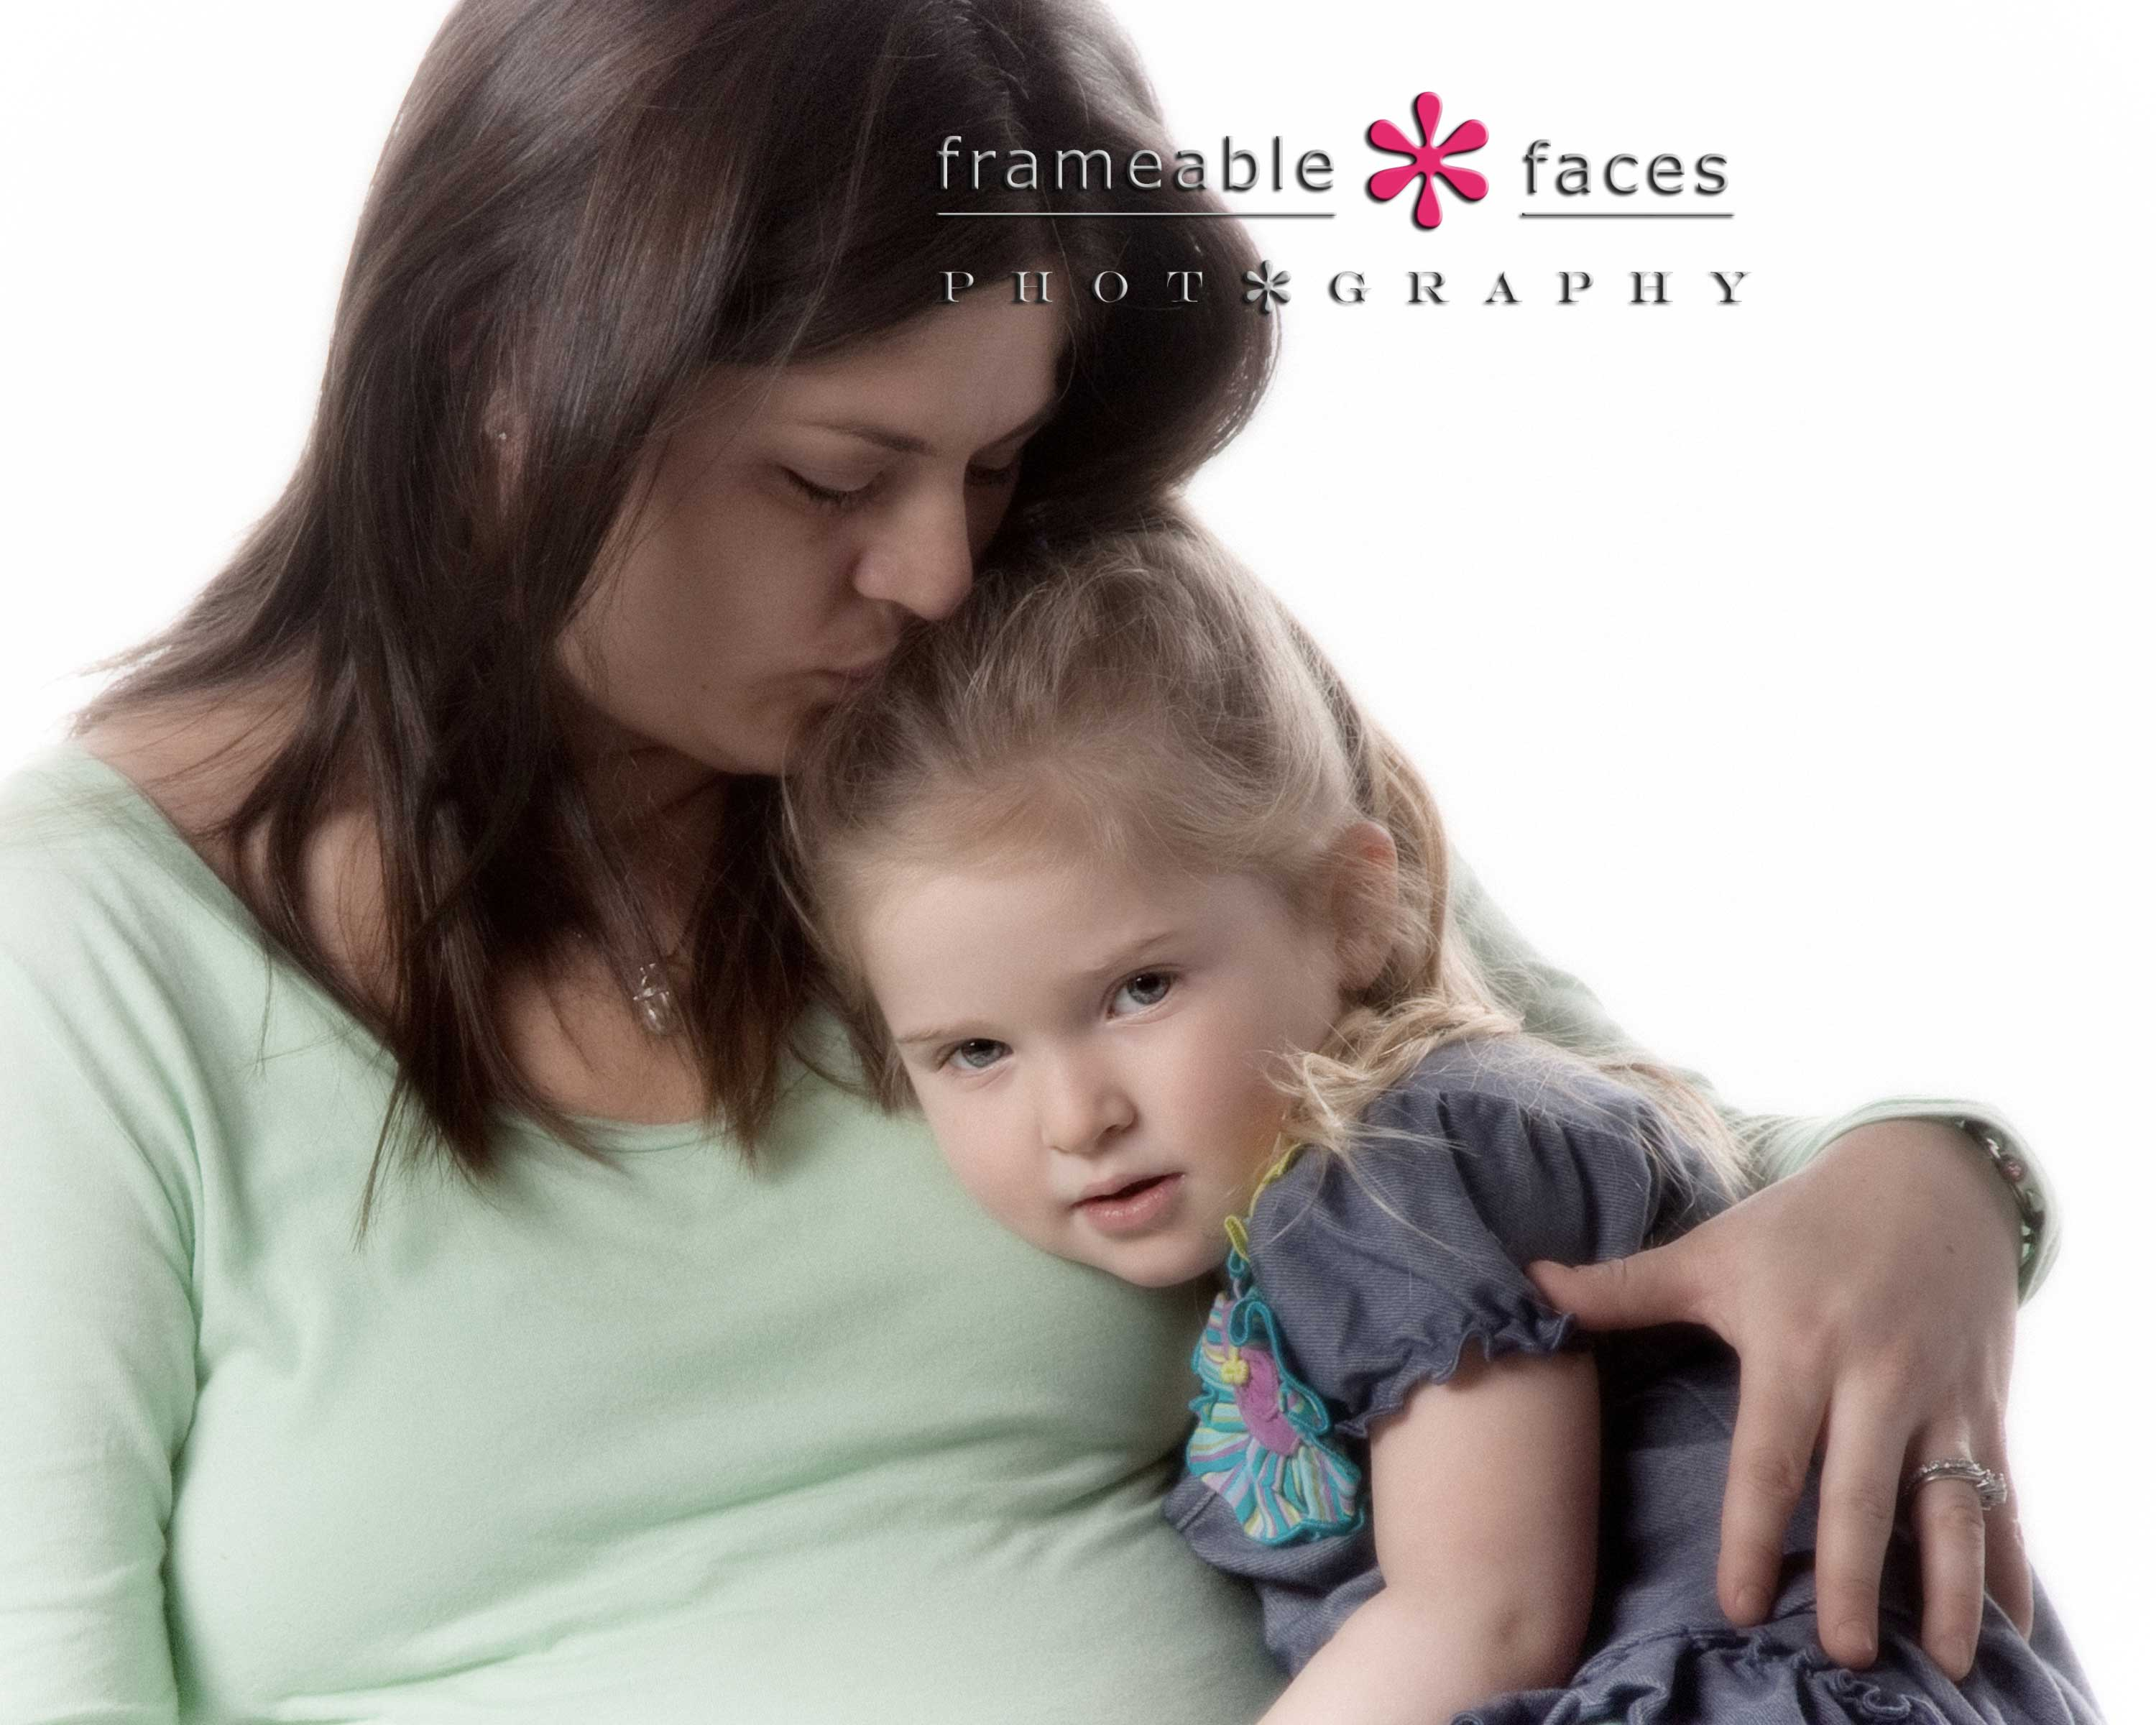 Frameable Faces Photography - Mommy and Daughter